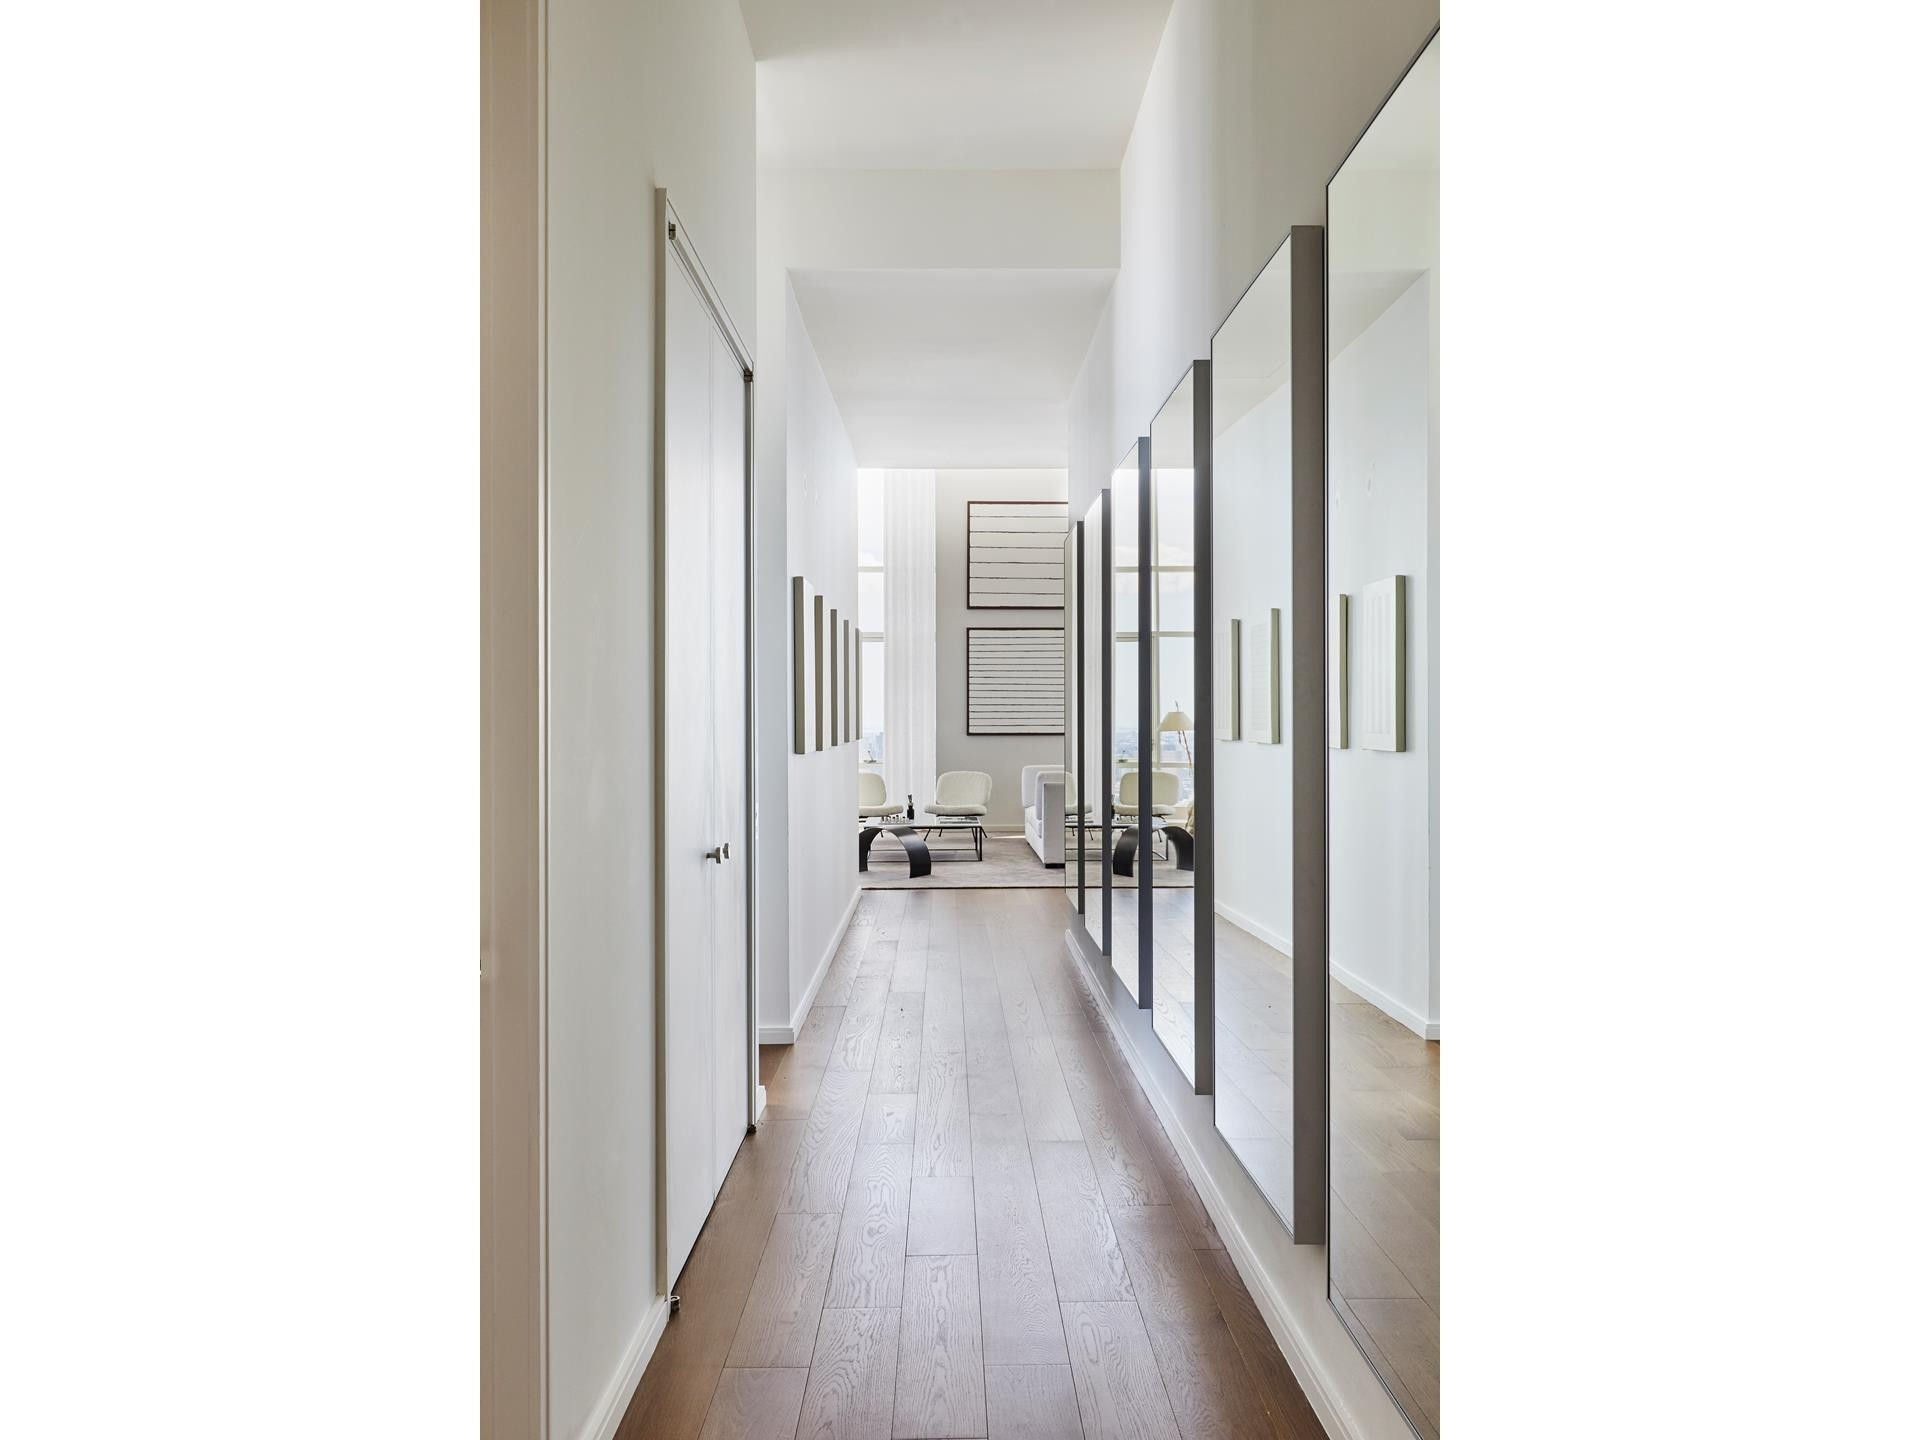 9. Condominiums for Sale at The Beekman Residences, 5 Beekman St, PH Financial District, New York, NY 10038